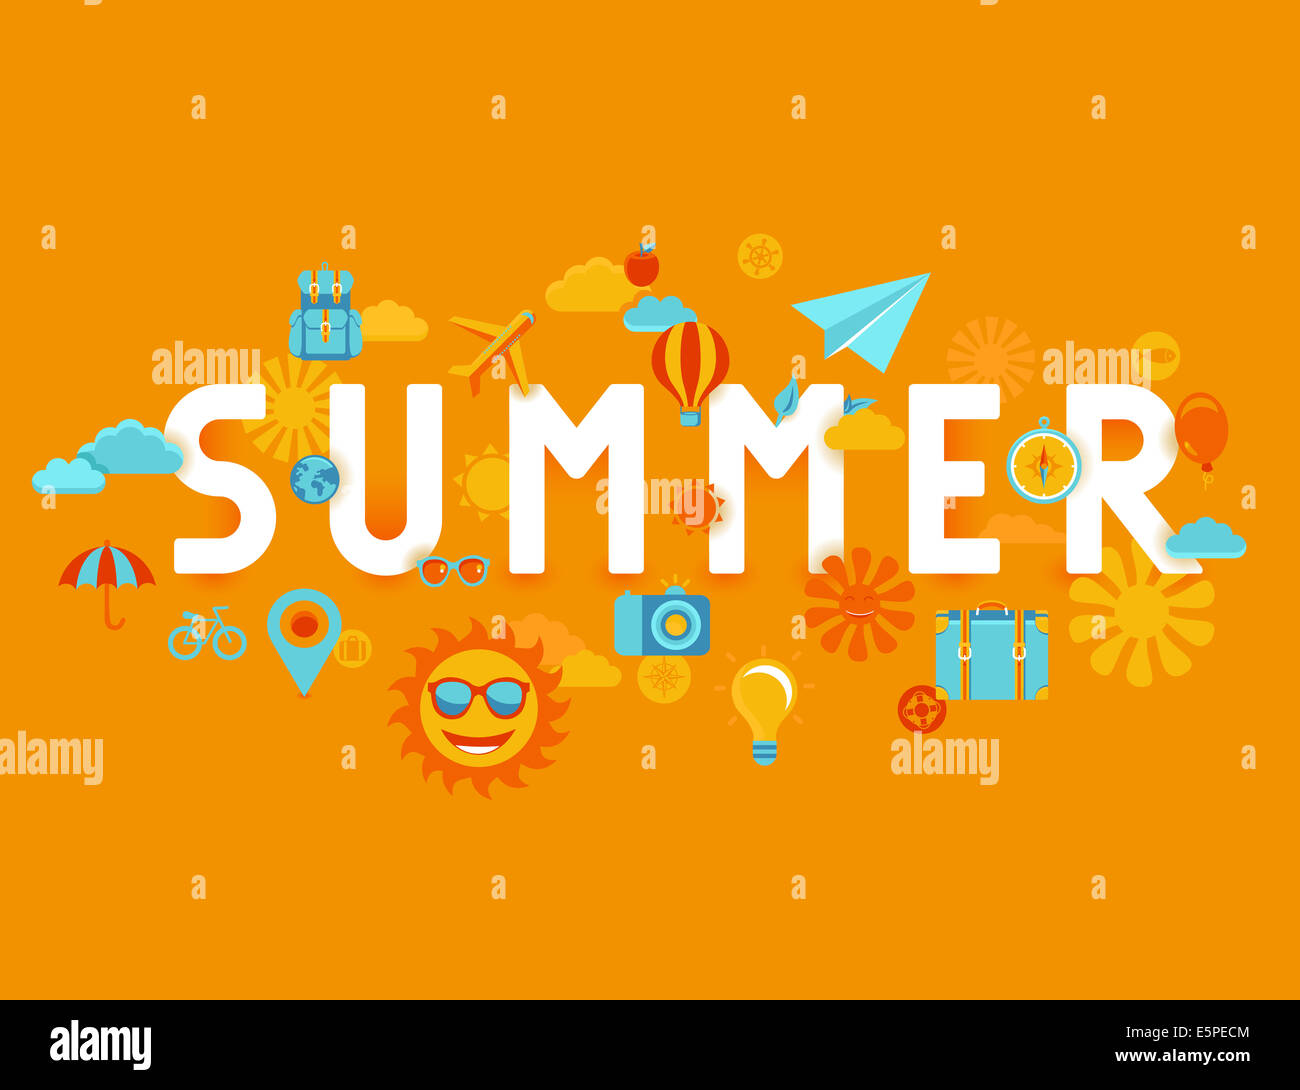 Summer poster in flat style - icons and signs with type - vacation and travel concept - Stock Image